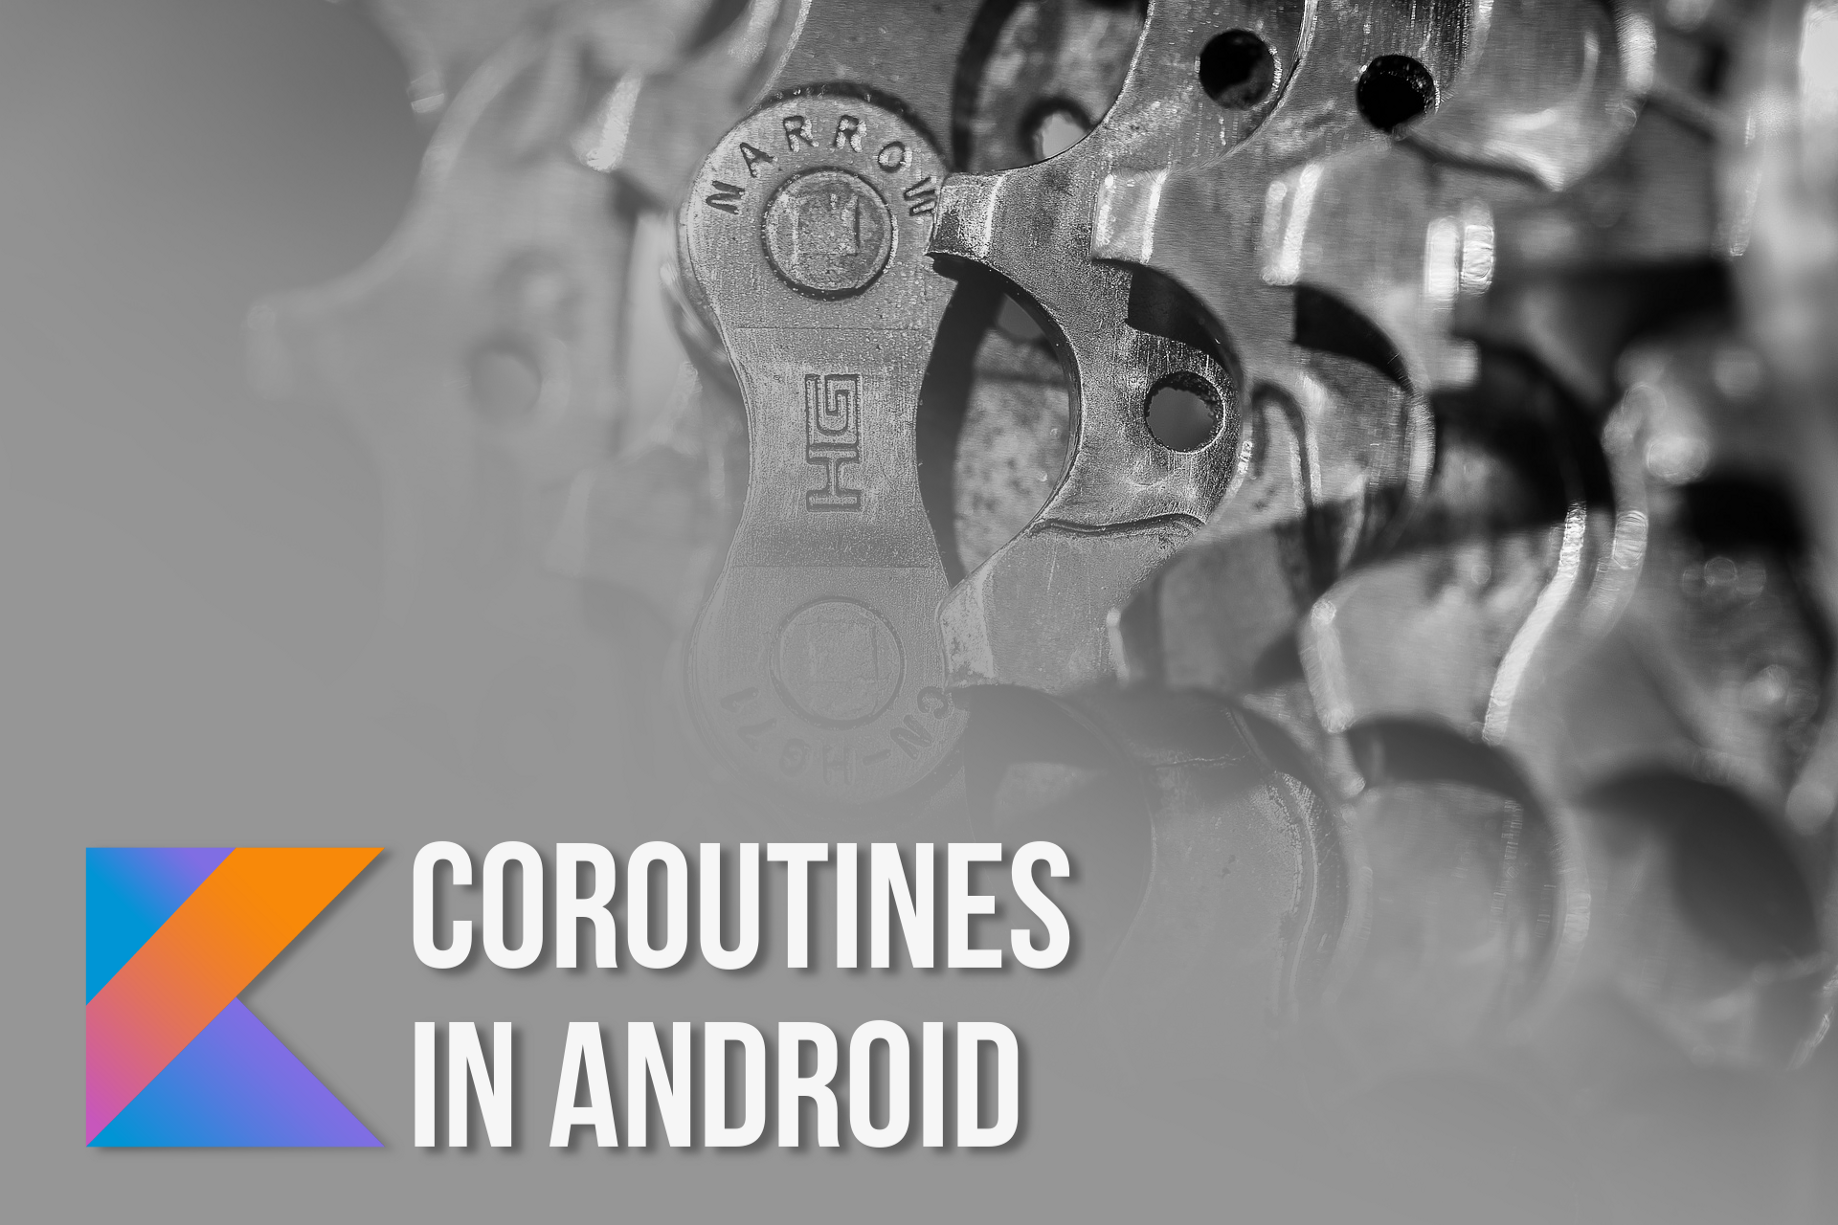 How coroutines switch back to the main thread  - ProAndroidDev